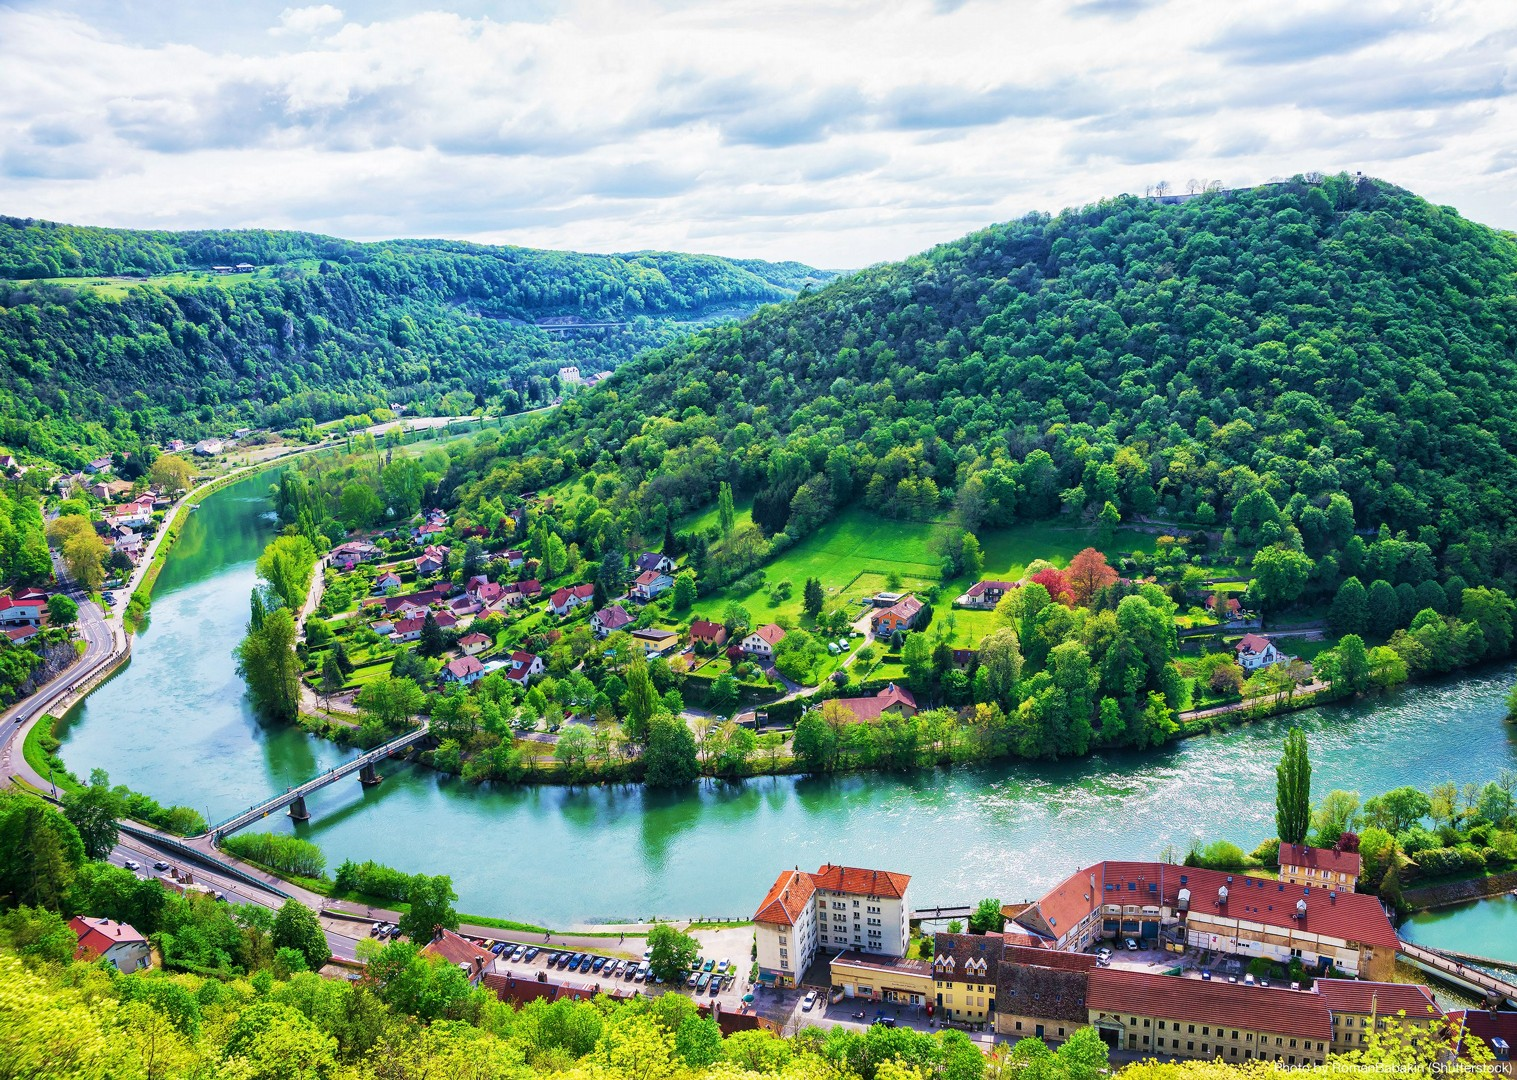 france-burgundy-caves-and-canals-leisure-cycling-holiday.jpg - France - Burgundy - Caves and Canals - Self-Guided Leisure Cycling Holiday - Leisure Cycling